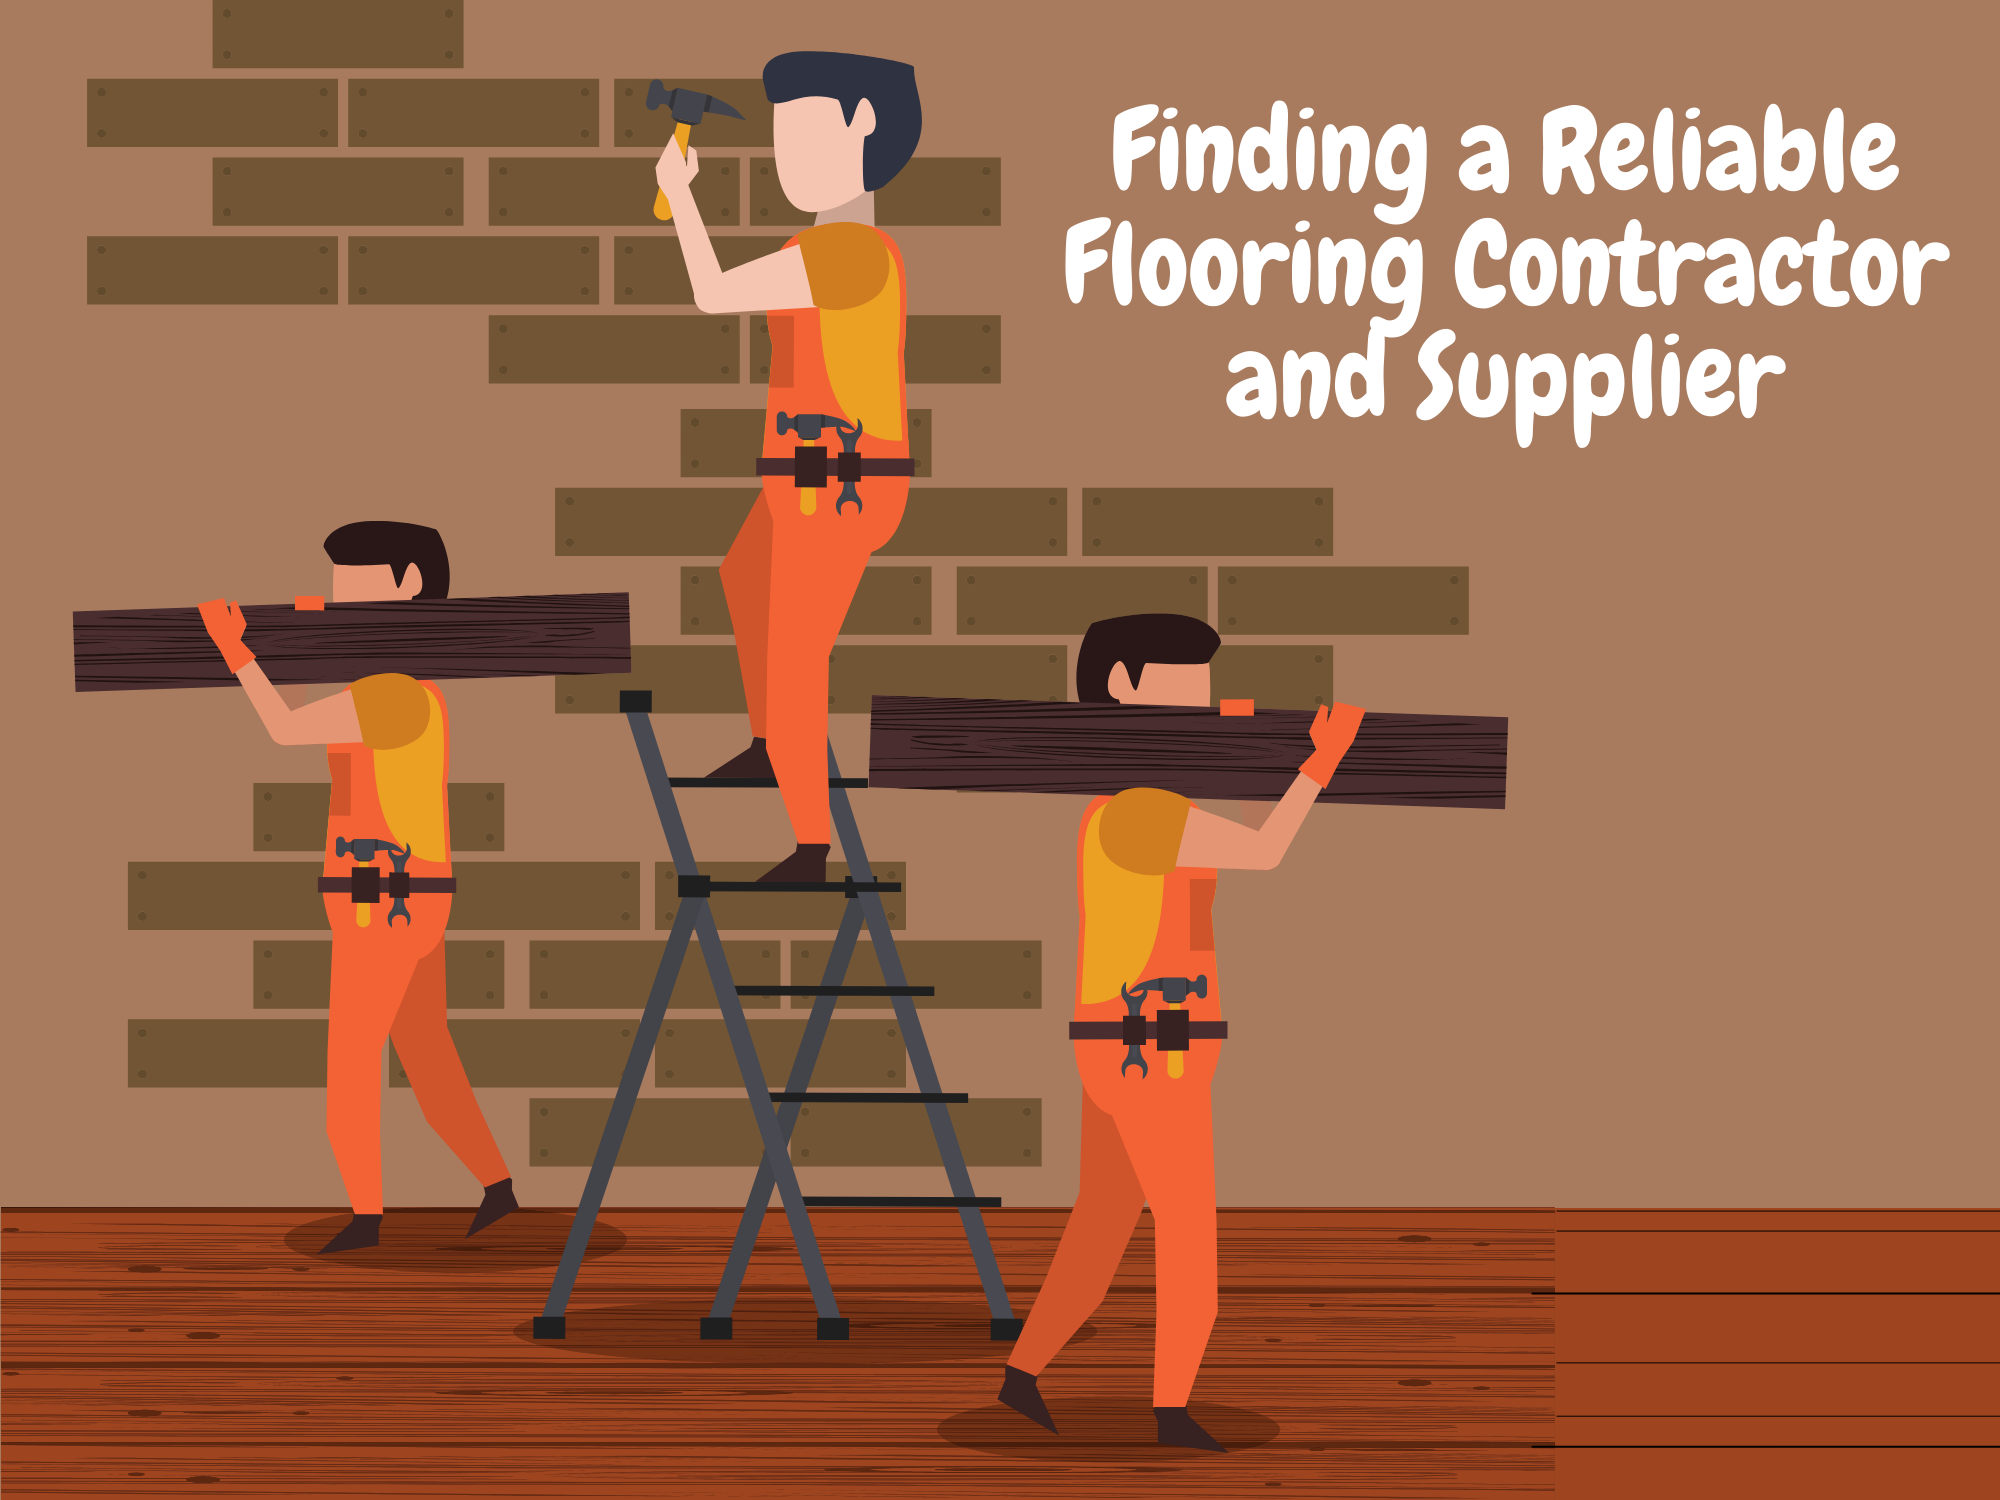 Finding-a-Reliable-Flooring-Contractor-and-Supplier